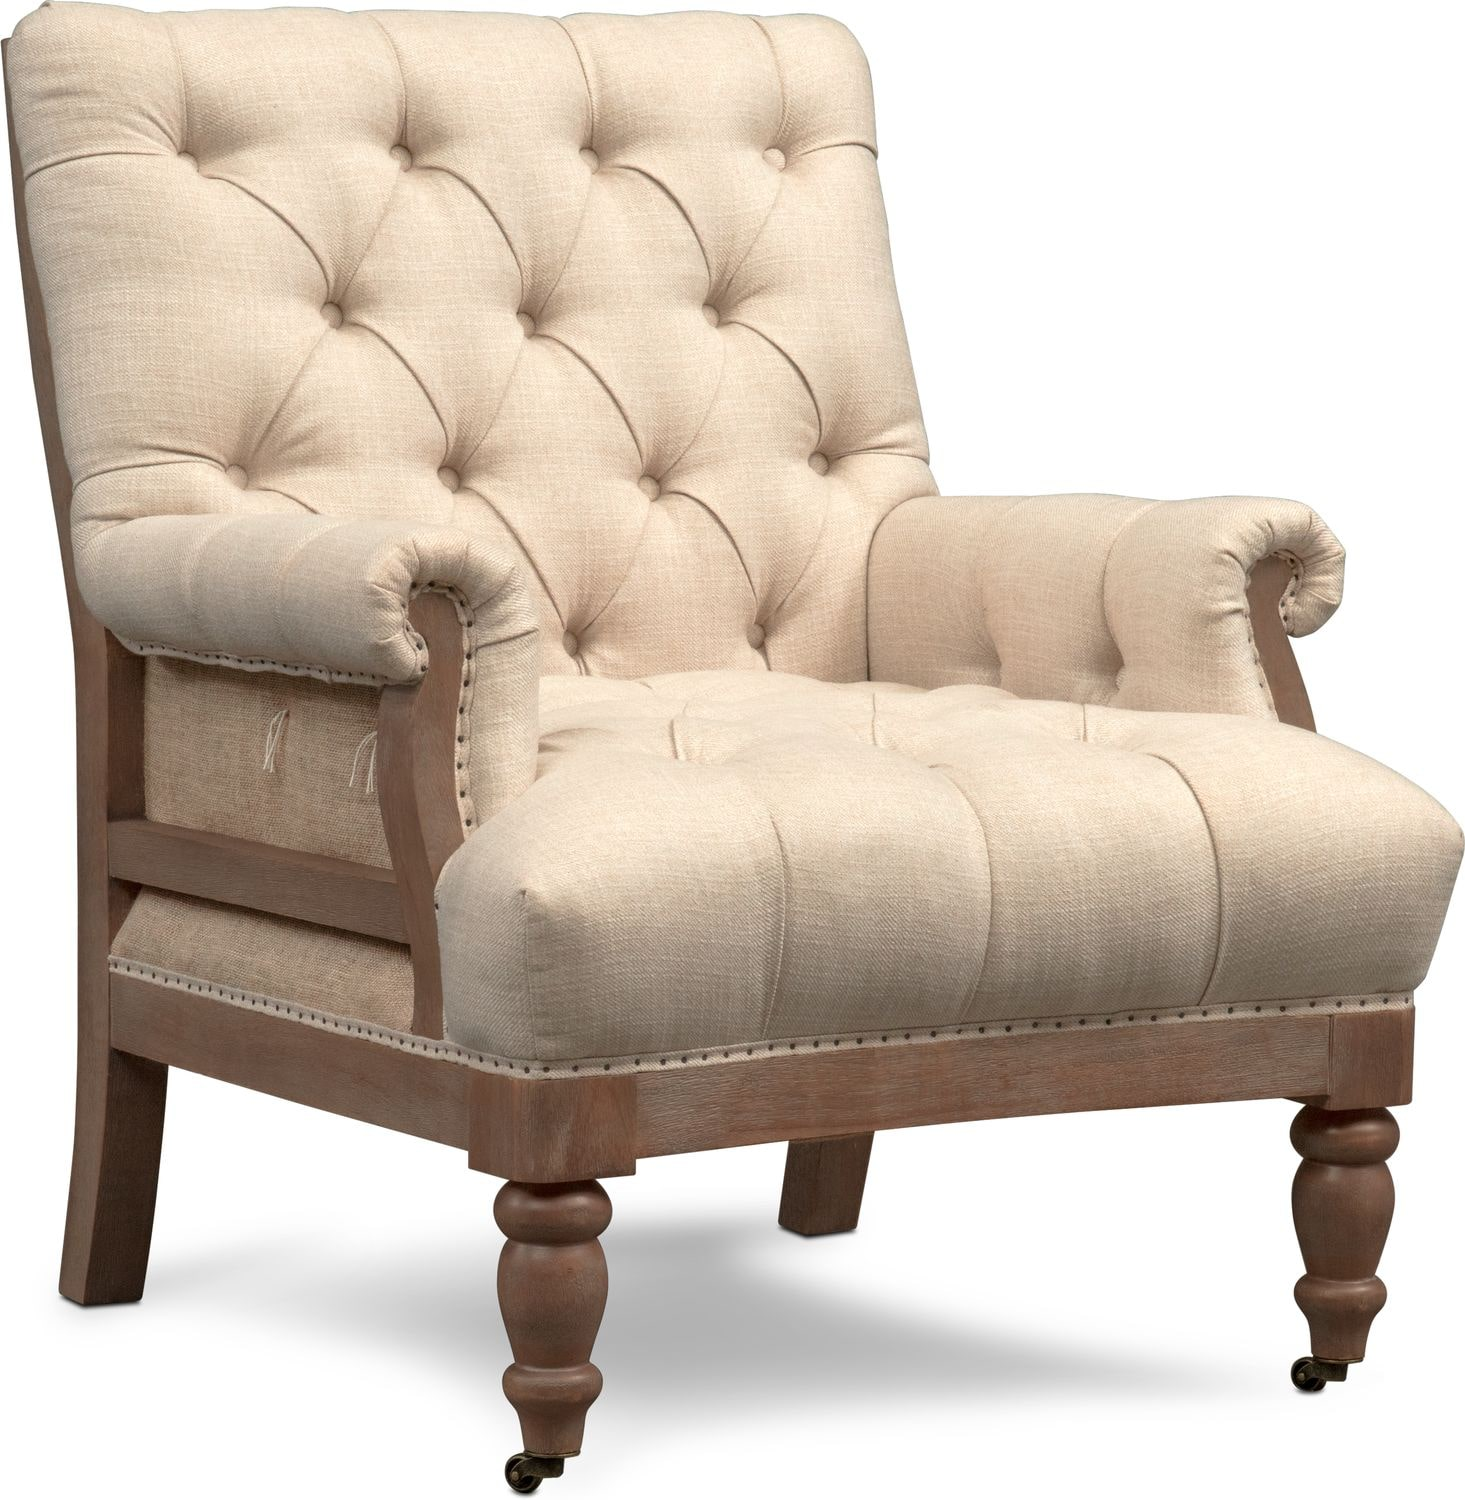 Bridget Accent Chair - Cream | Value City Furniture and Mattresses